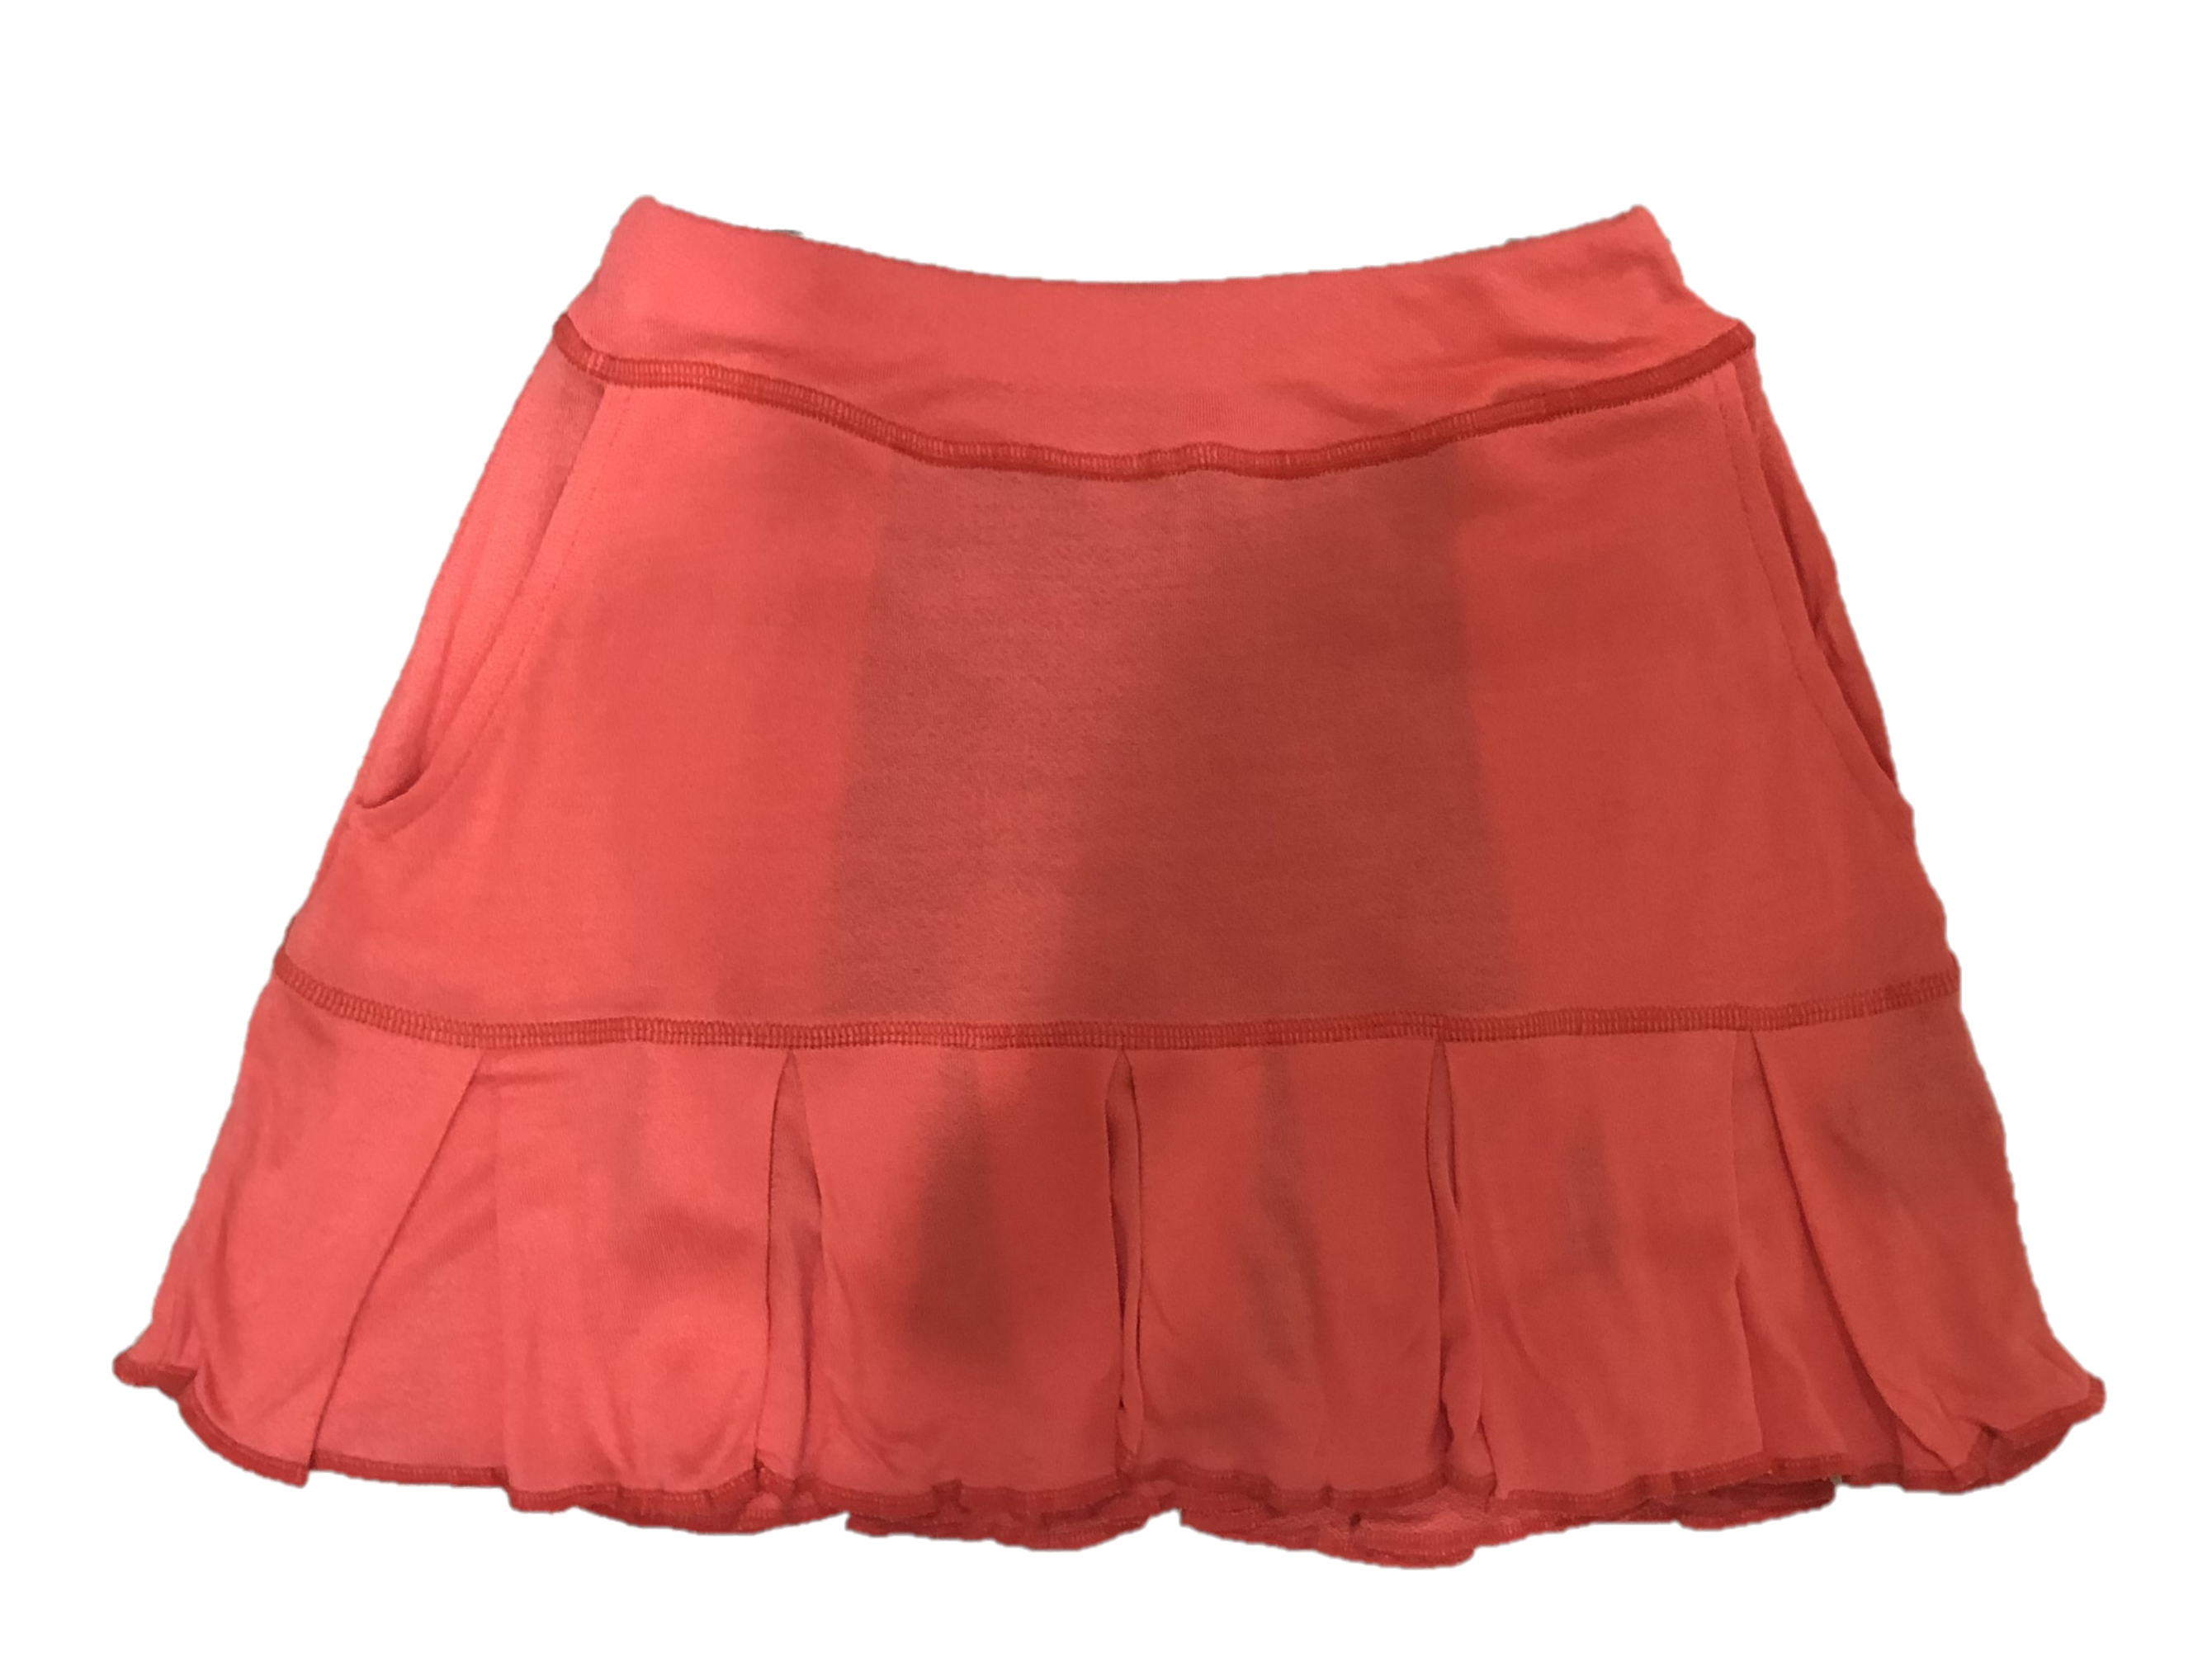 LS-064A    Skirt Ultra Soft Feel Tangerine With All Around Swing Pleats And 2 Rear Pockets